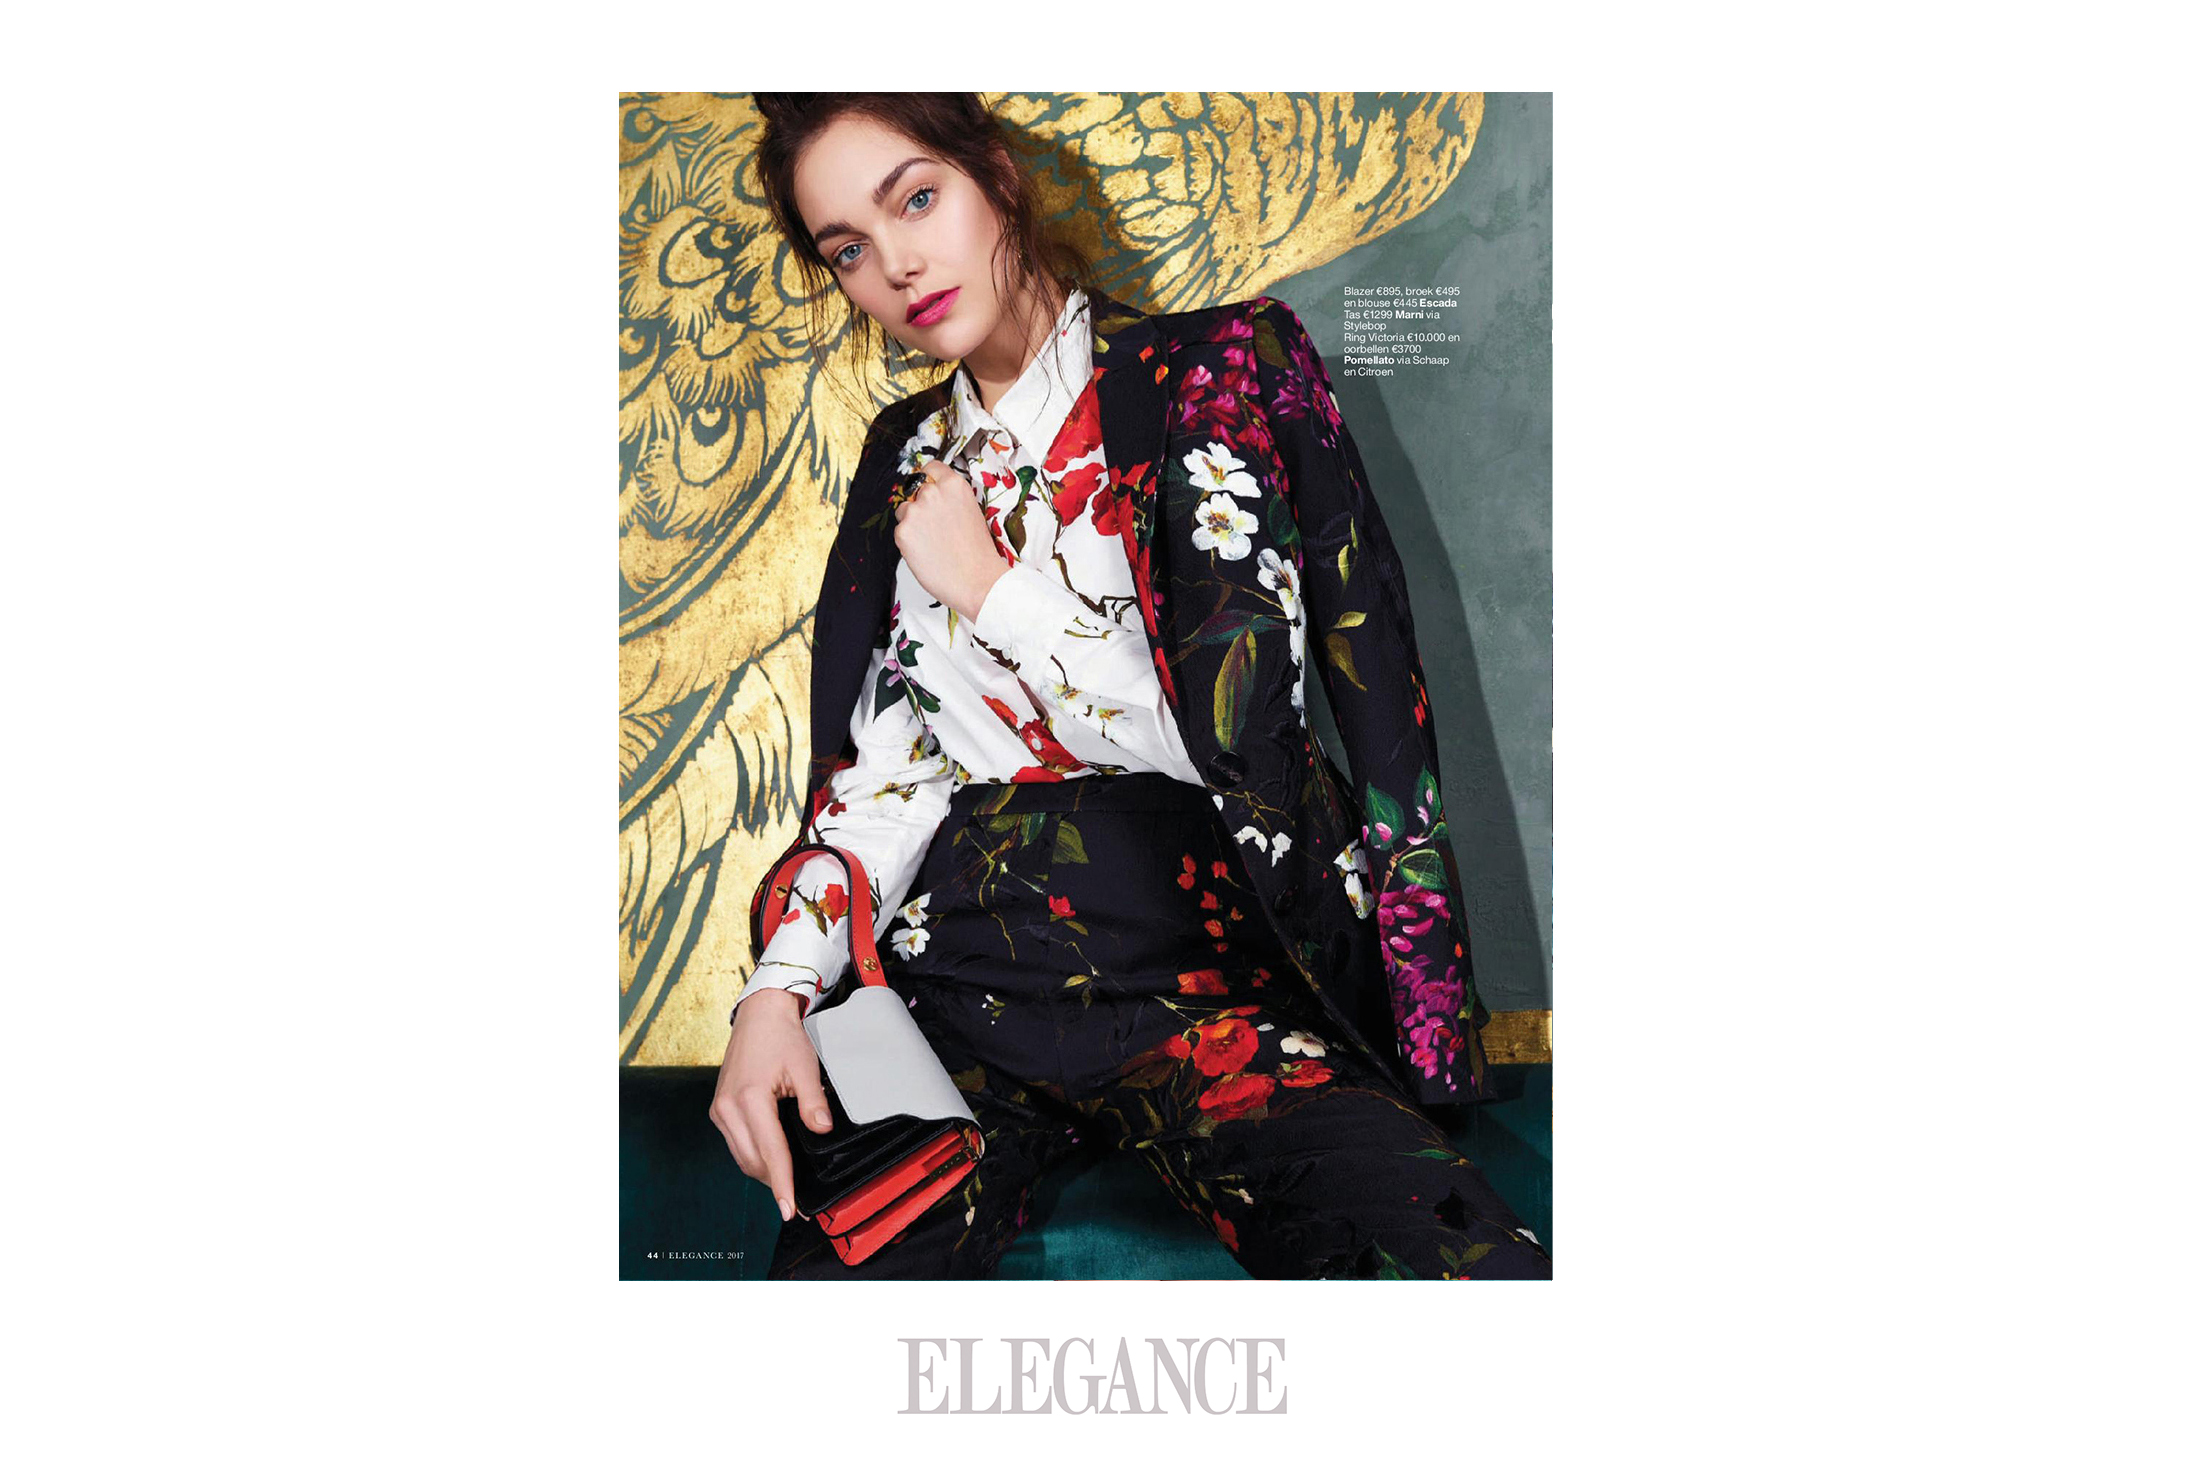 ELEGANCE  2/2017 - Aparently  brands like Chanel, Prada. YSL and Fendi like  magpies too . . .